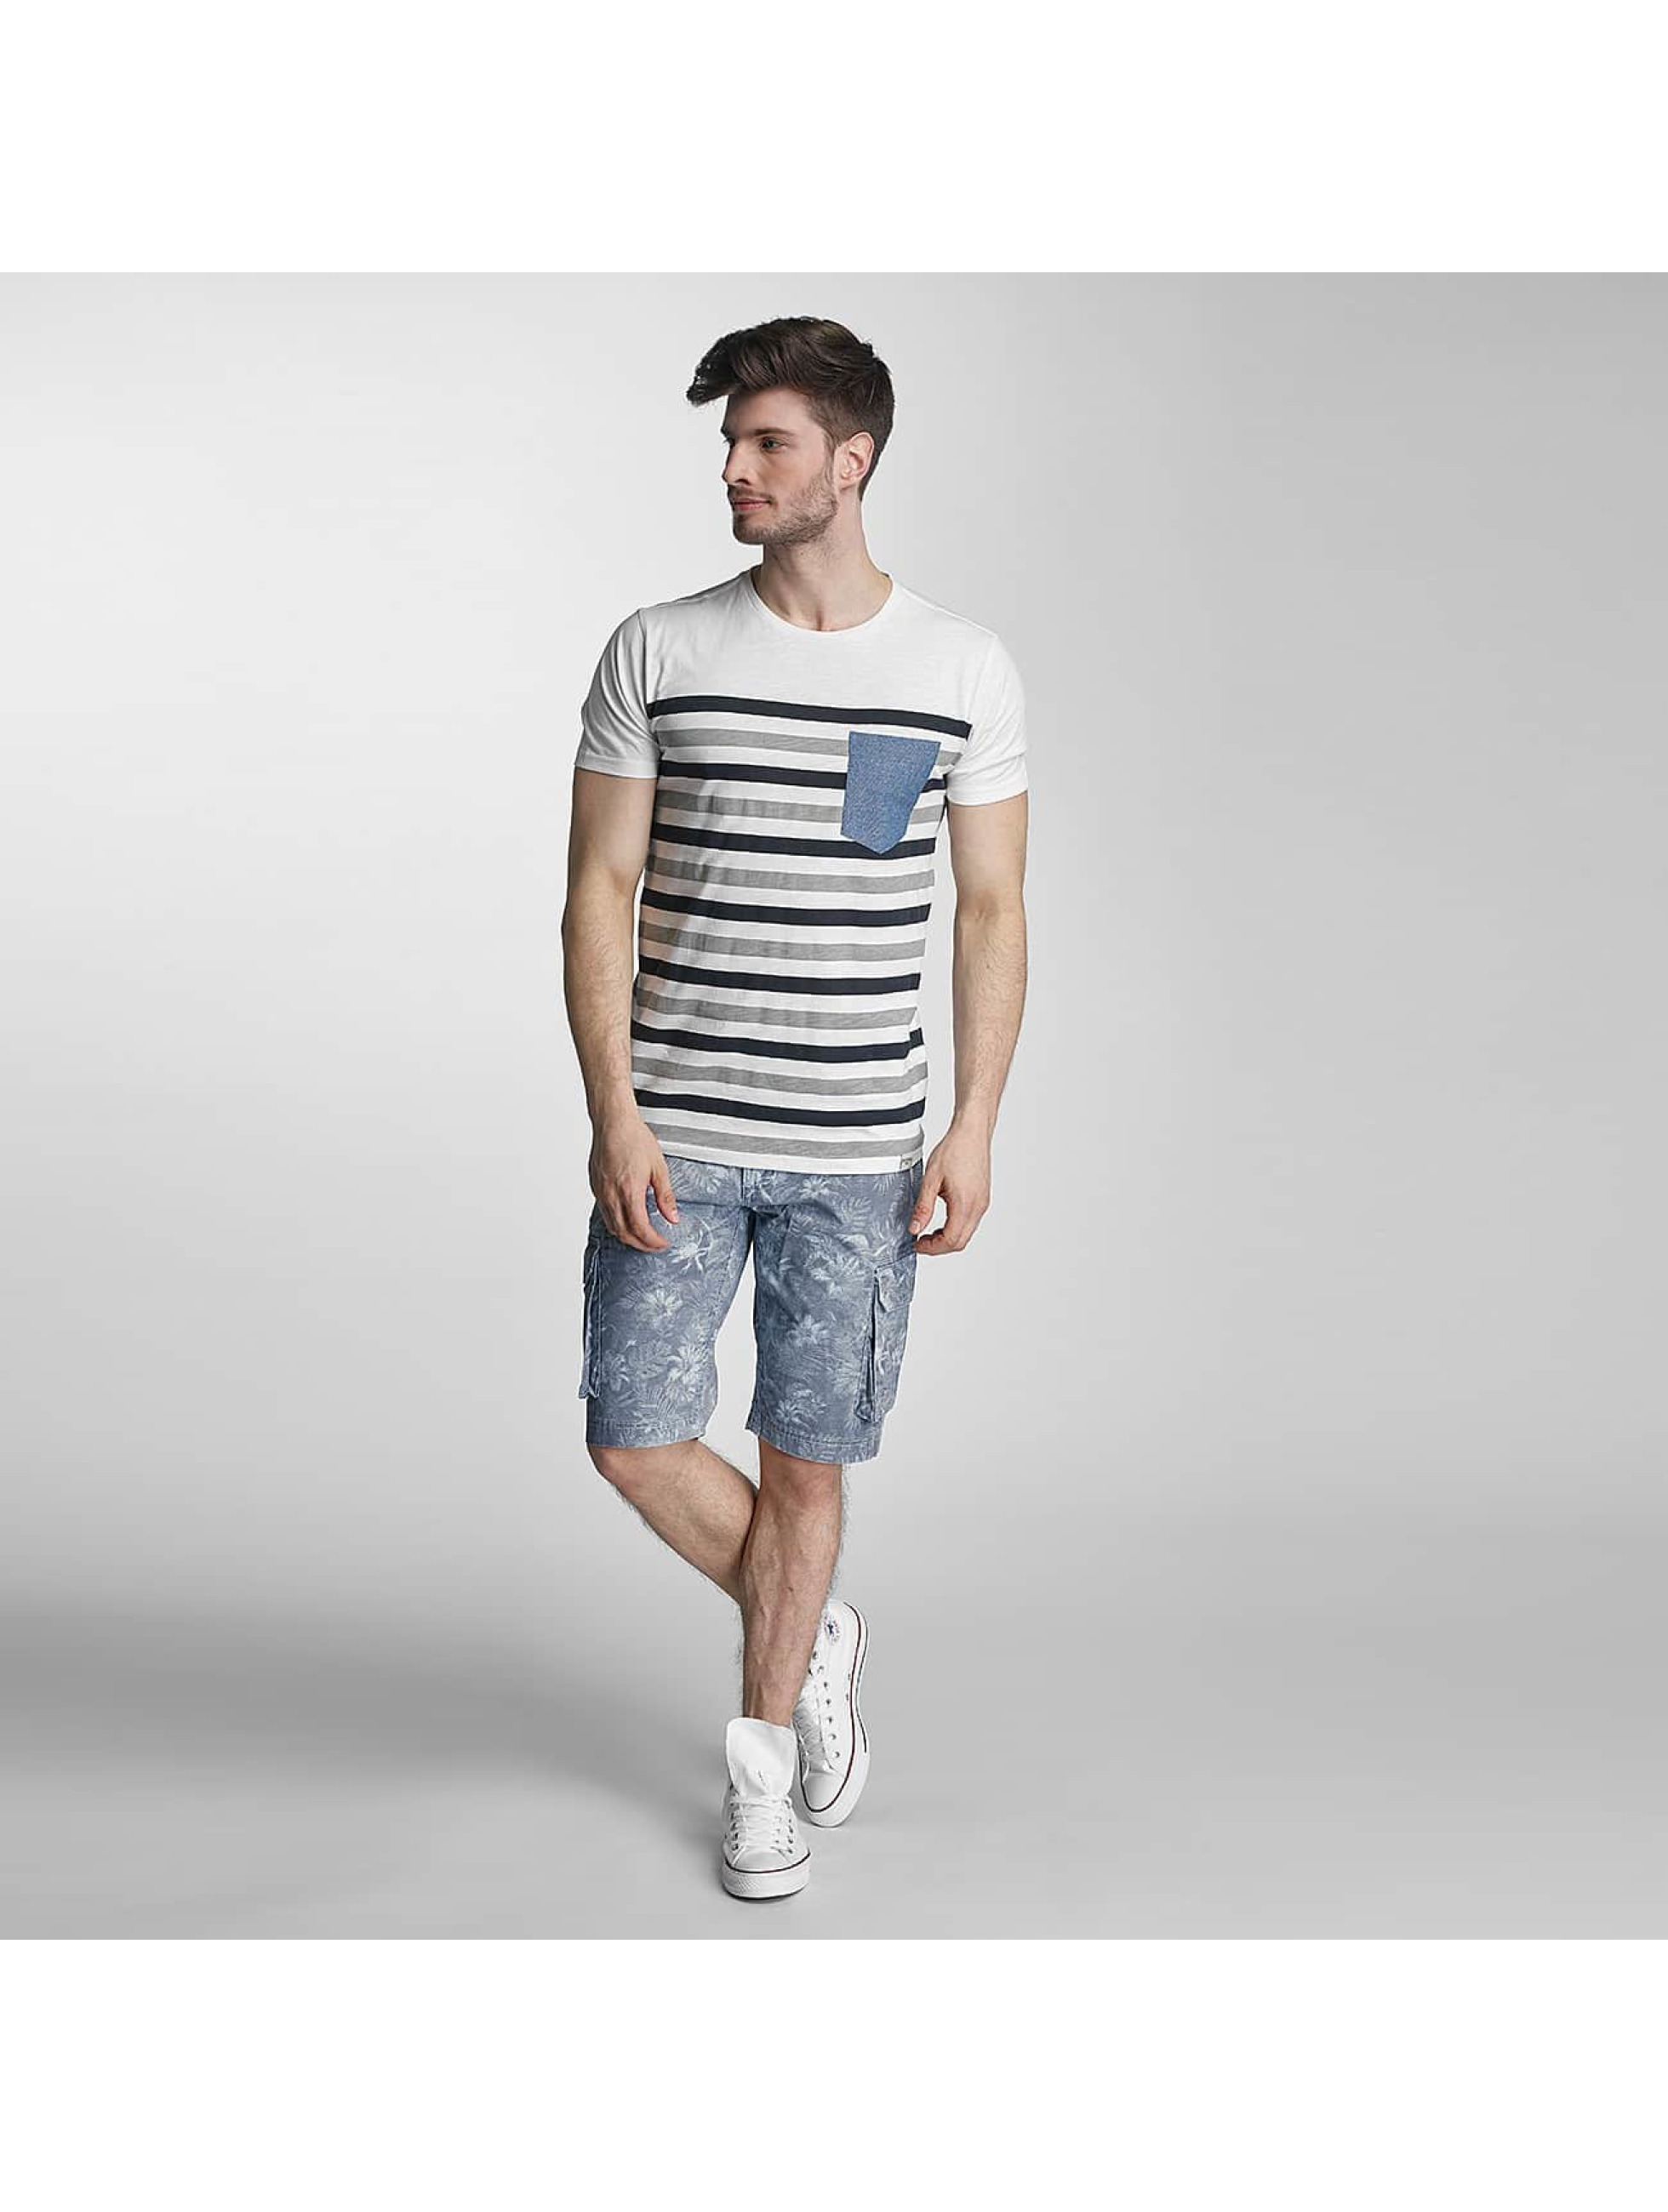 SHINE Original T-Shirt Striped grey